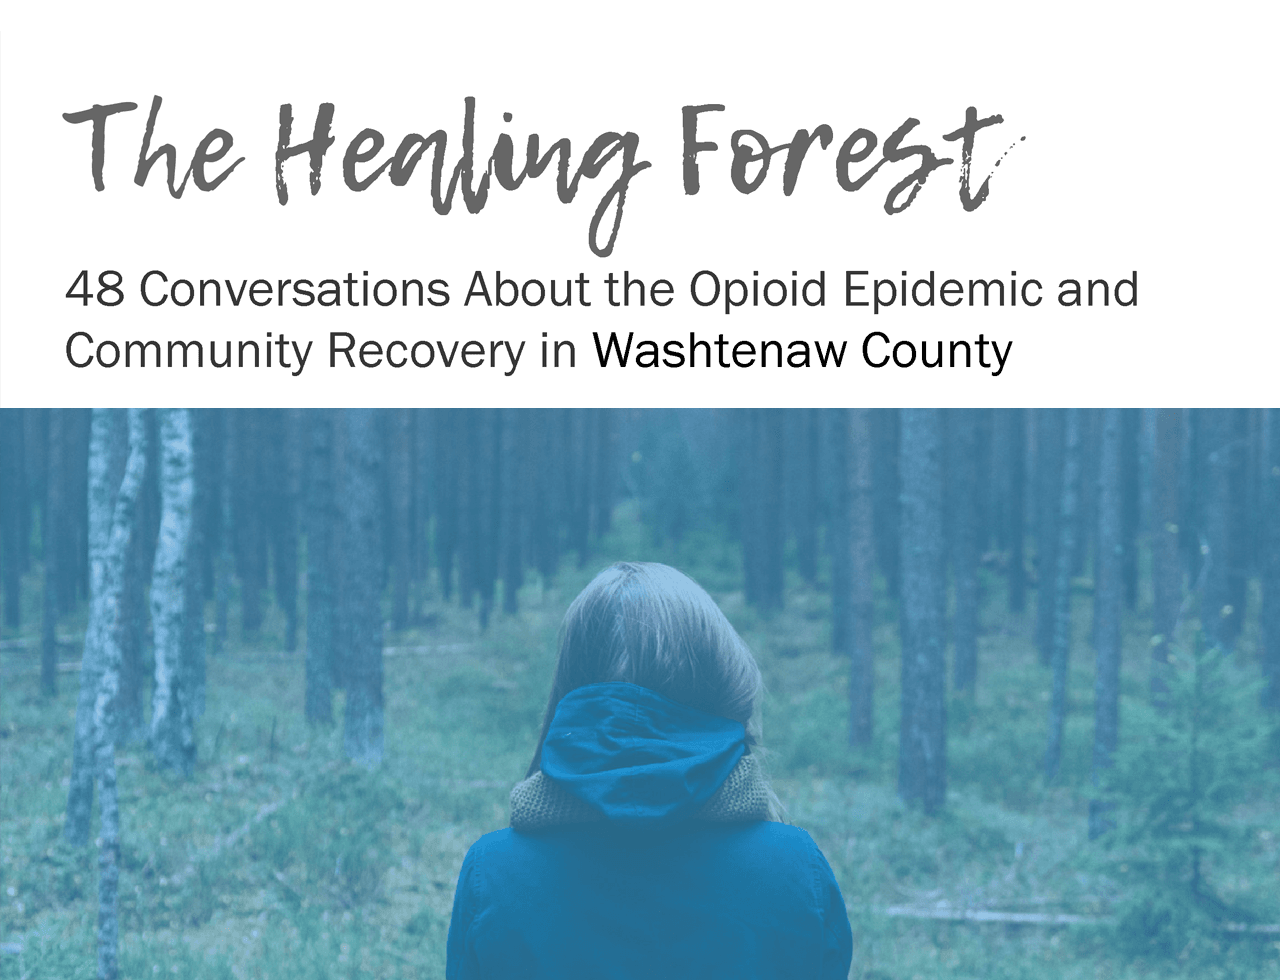 The Healing Forest - 48 conversations about the opioid epidemic and community recovery in Washtenaw